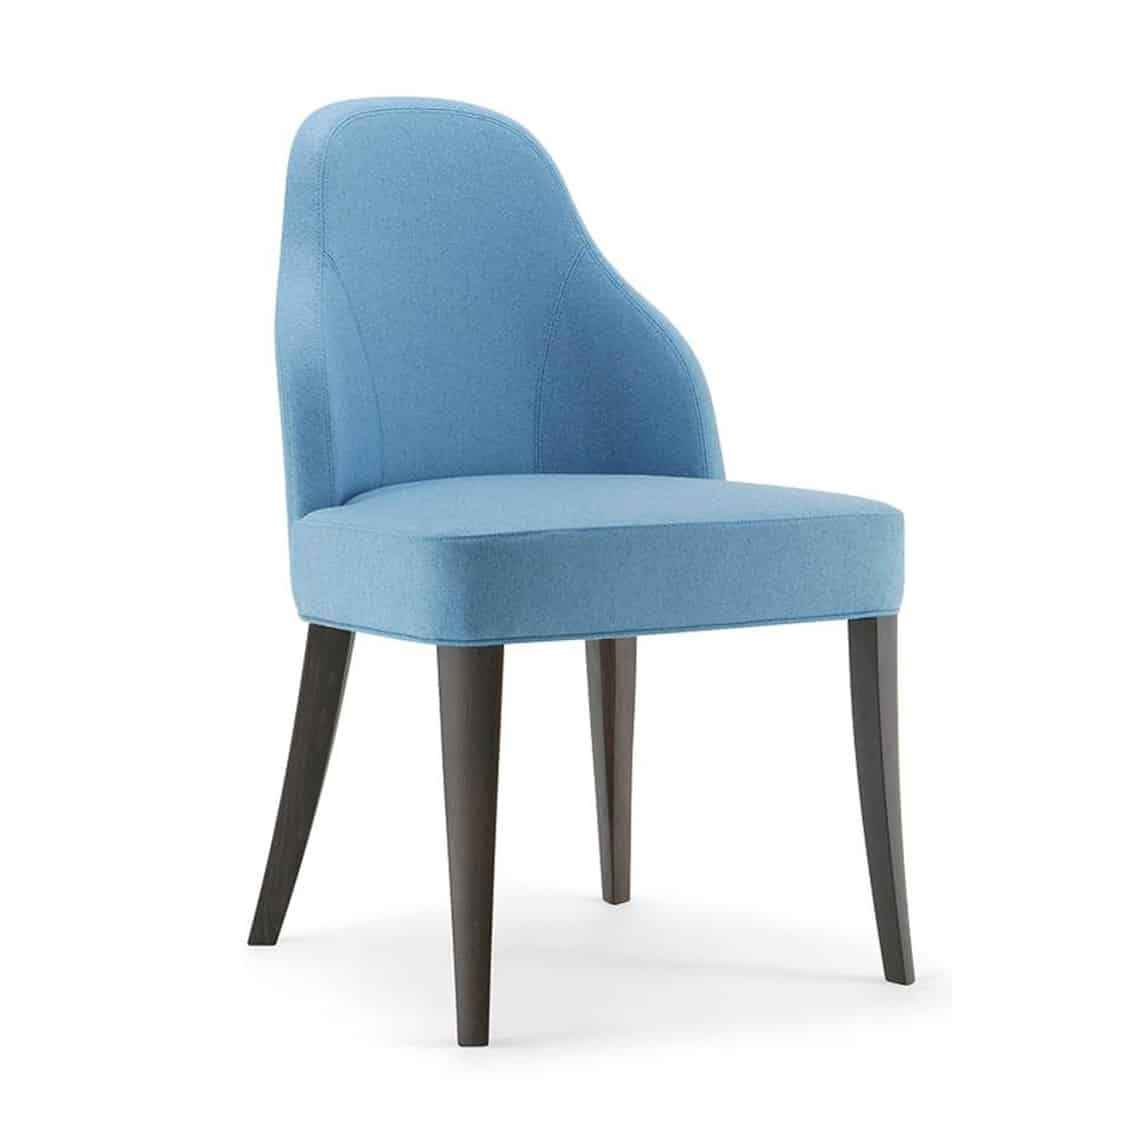 Chicago Side Chair Tirollo DeFrae Contract Furniture 015 S